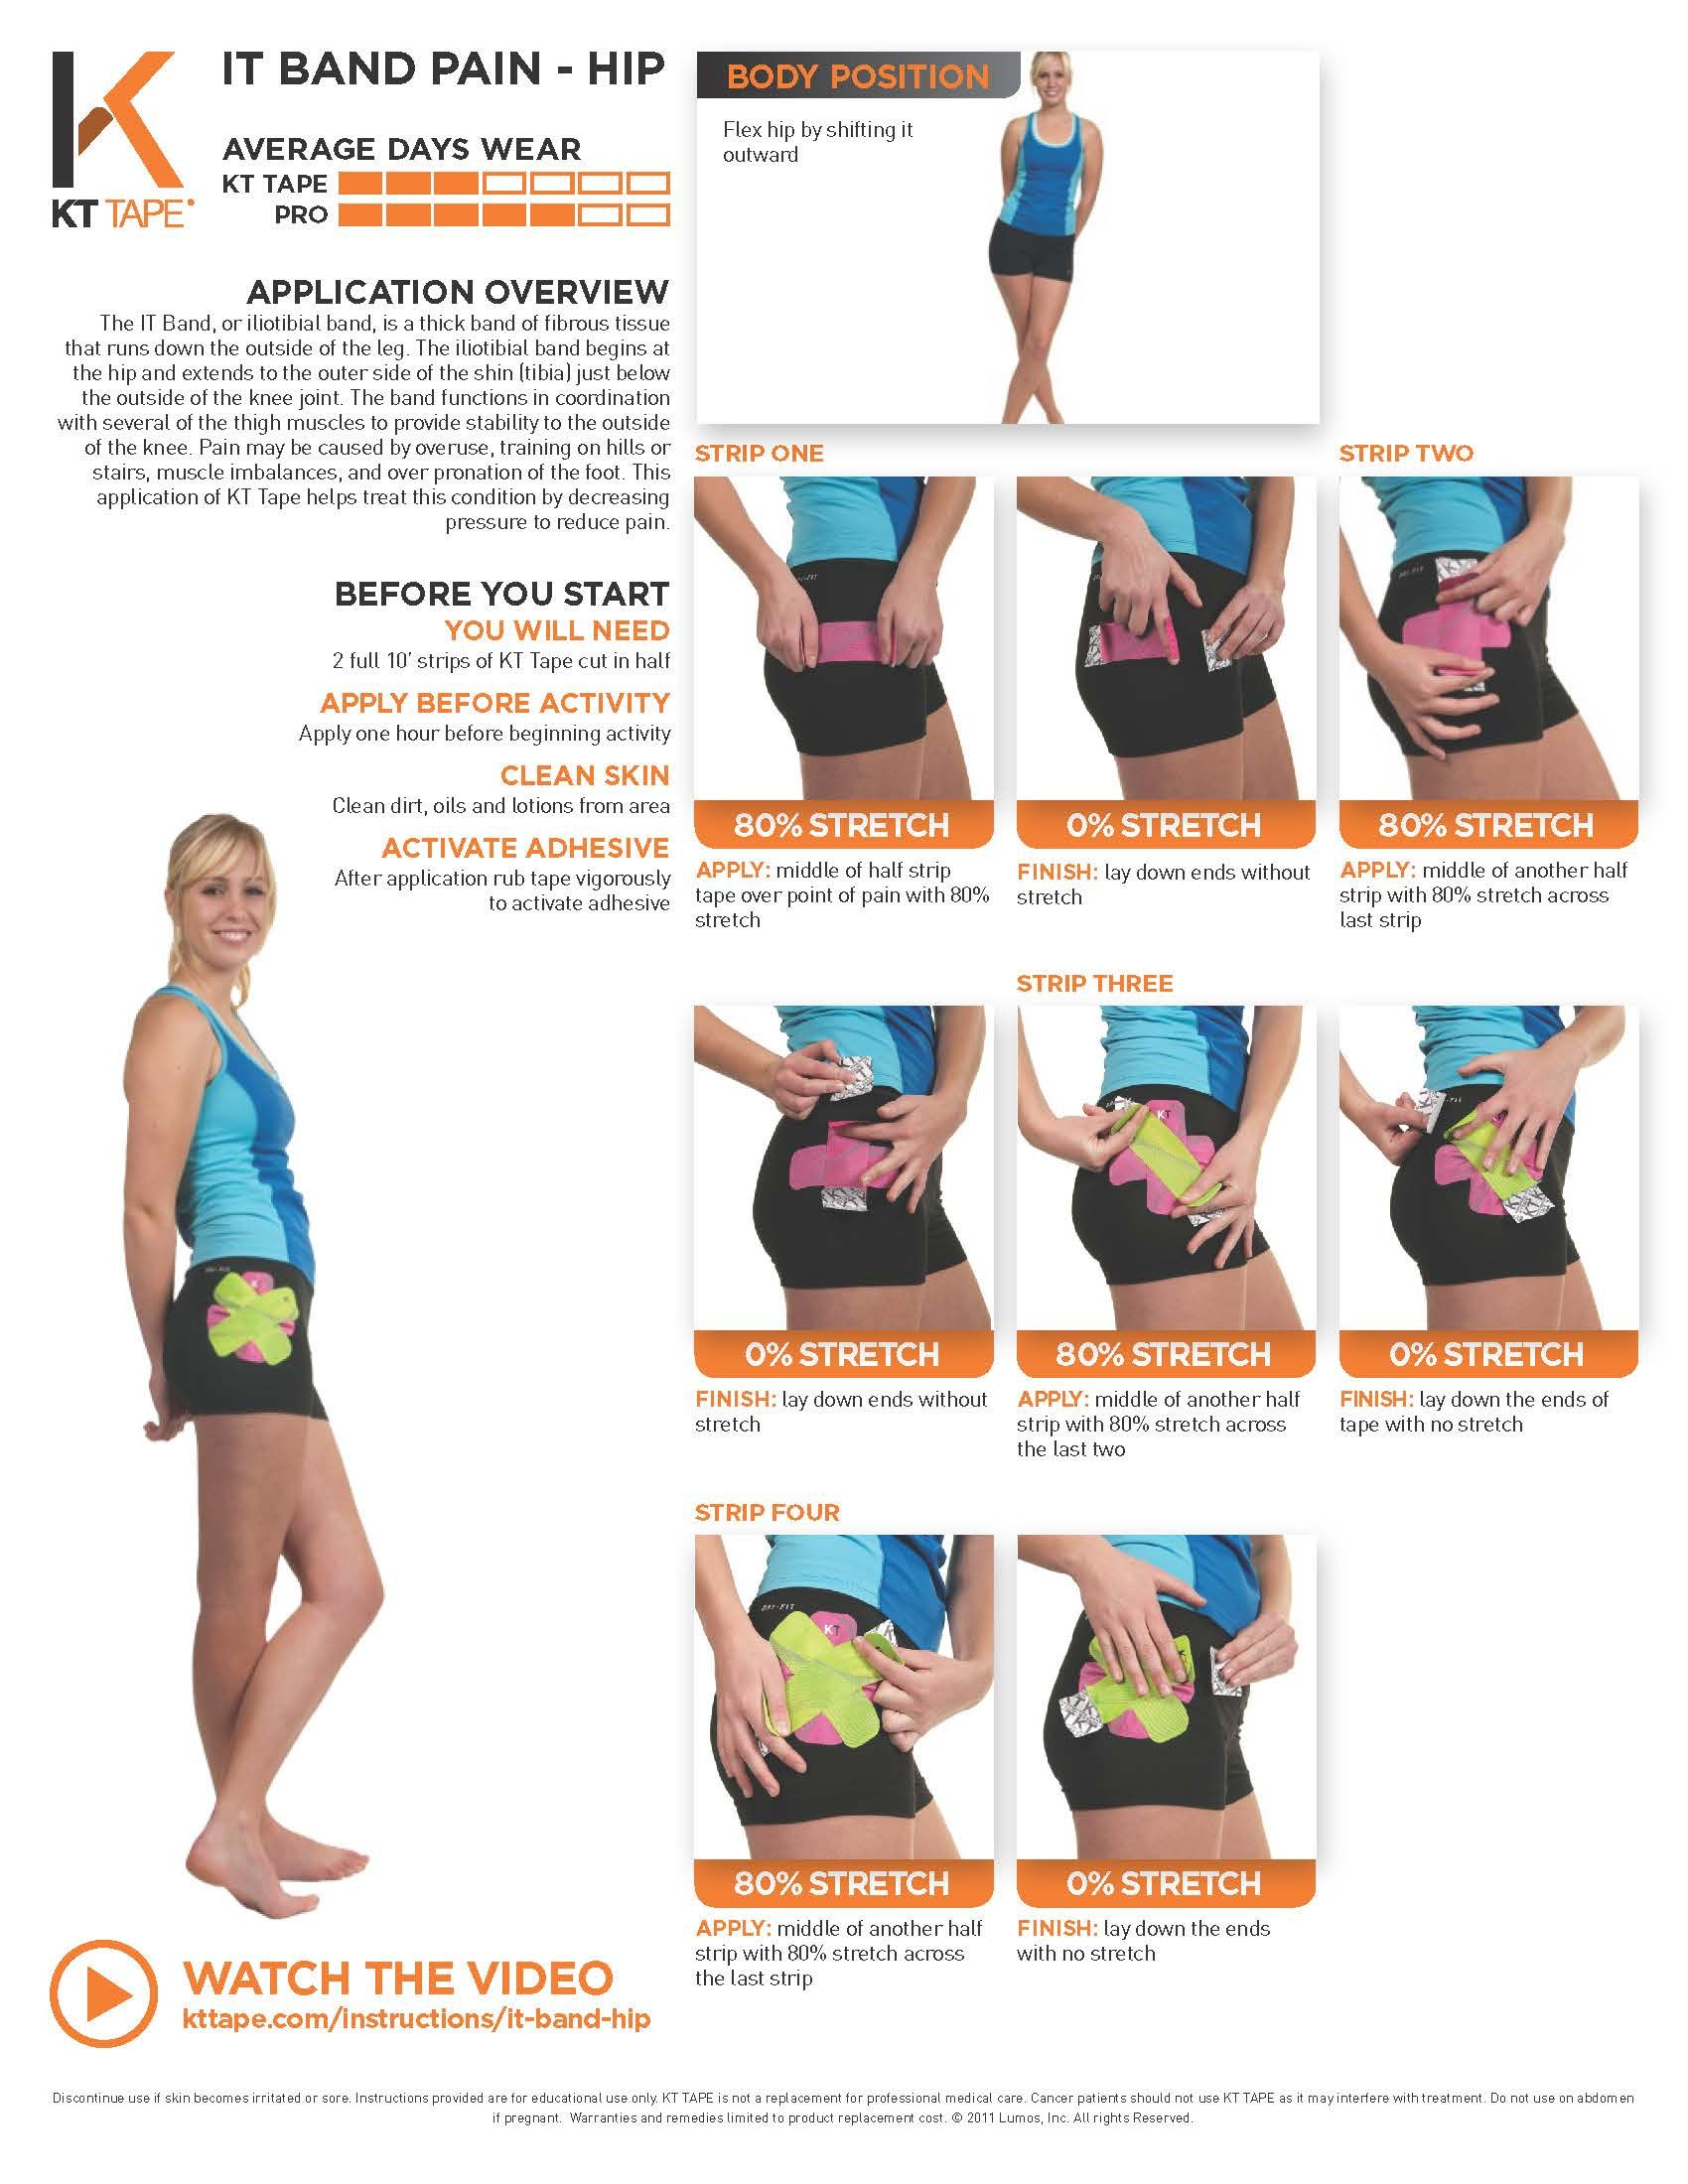 It band pain hip taping this application of kt tape